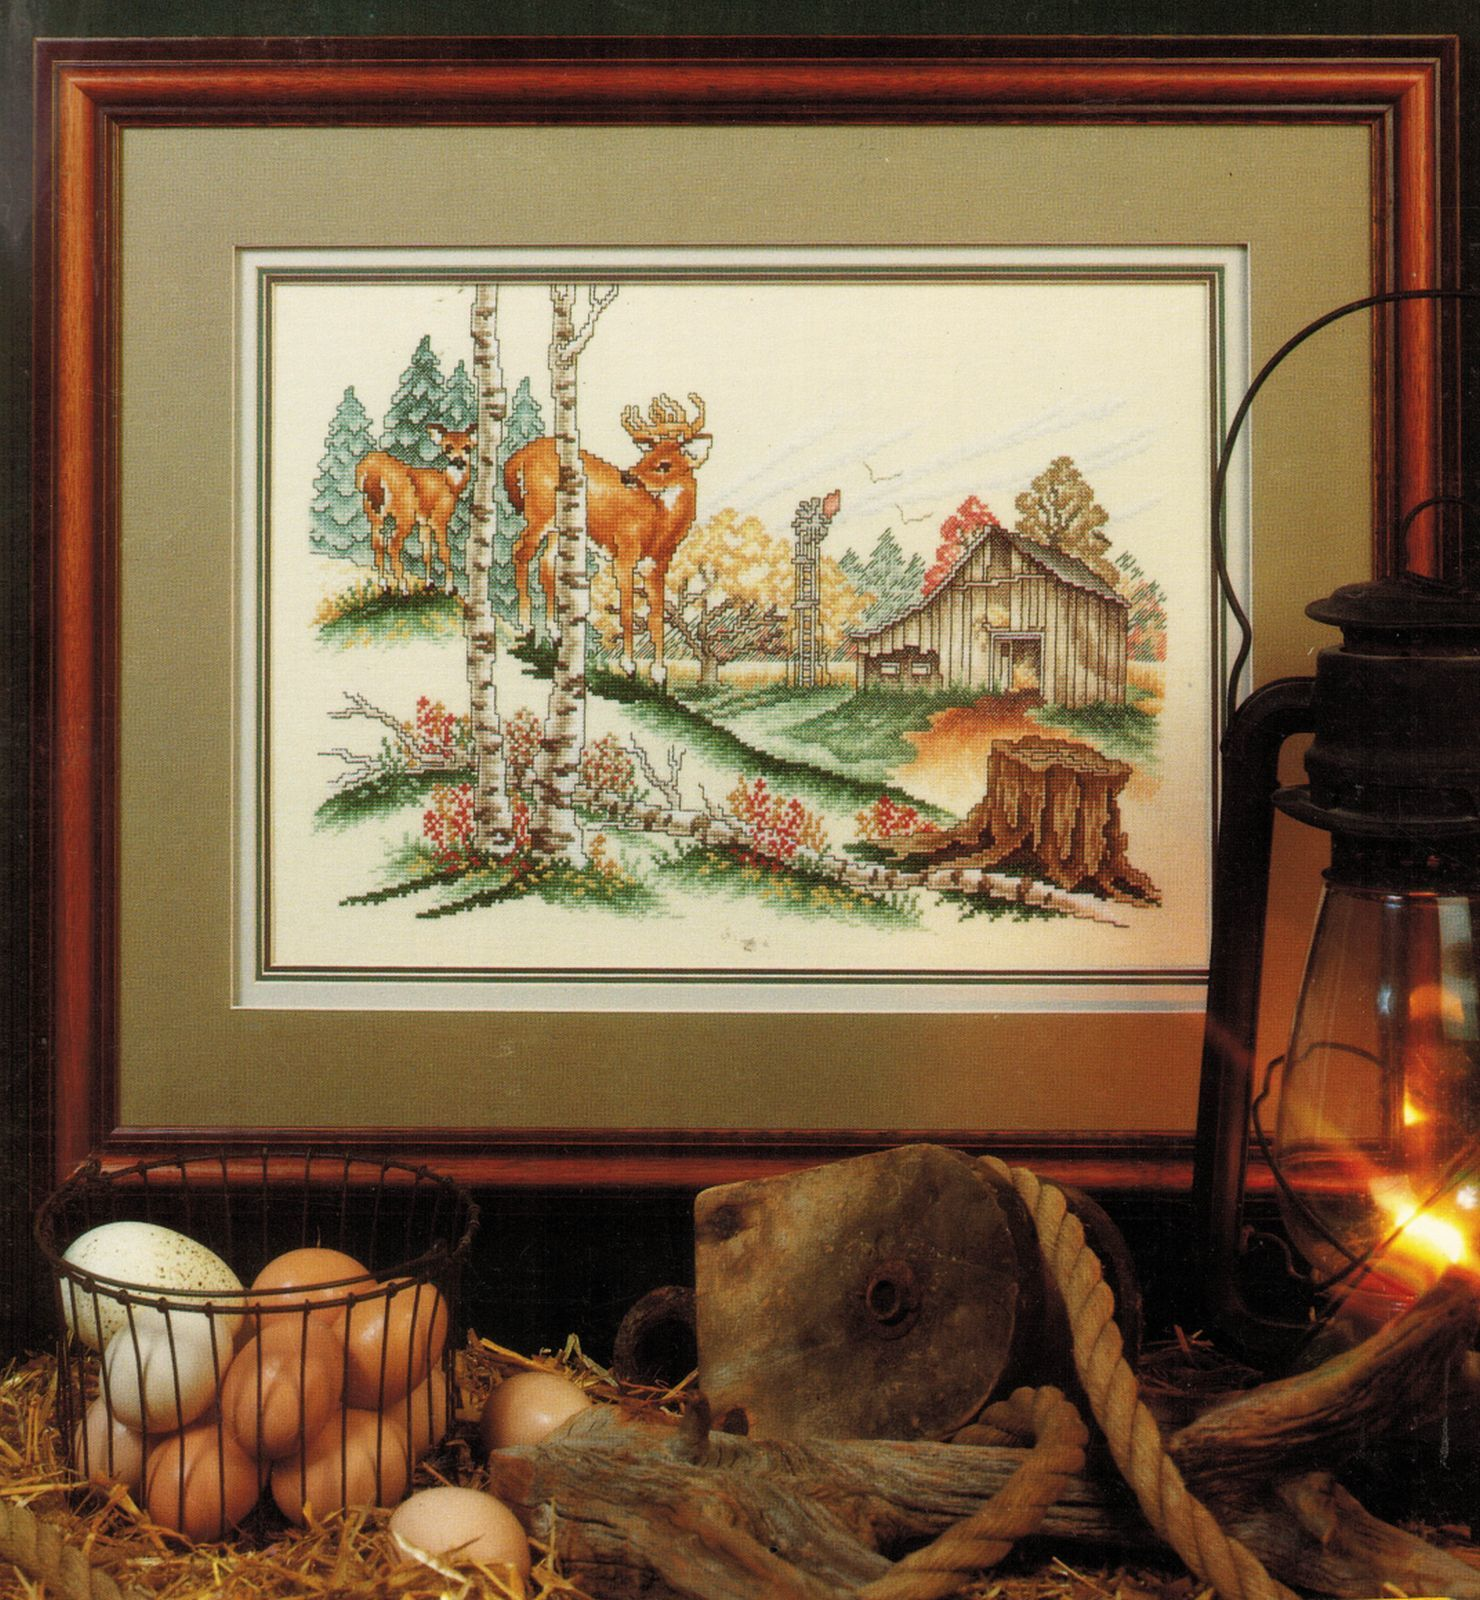 Vtg Cross Stitch Wary Approach Buck Doe Deer Barn Woodland Framed Print Pattern - $11.99